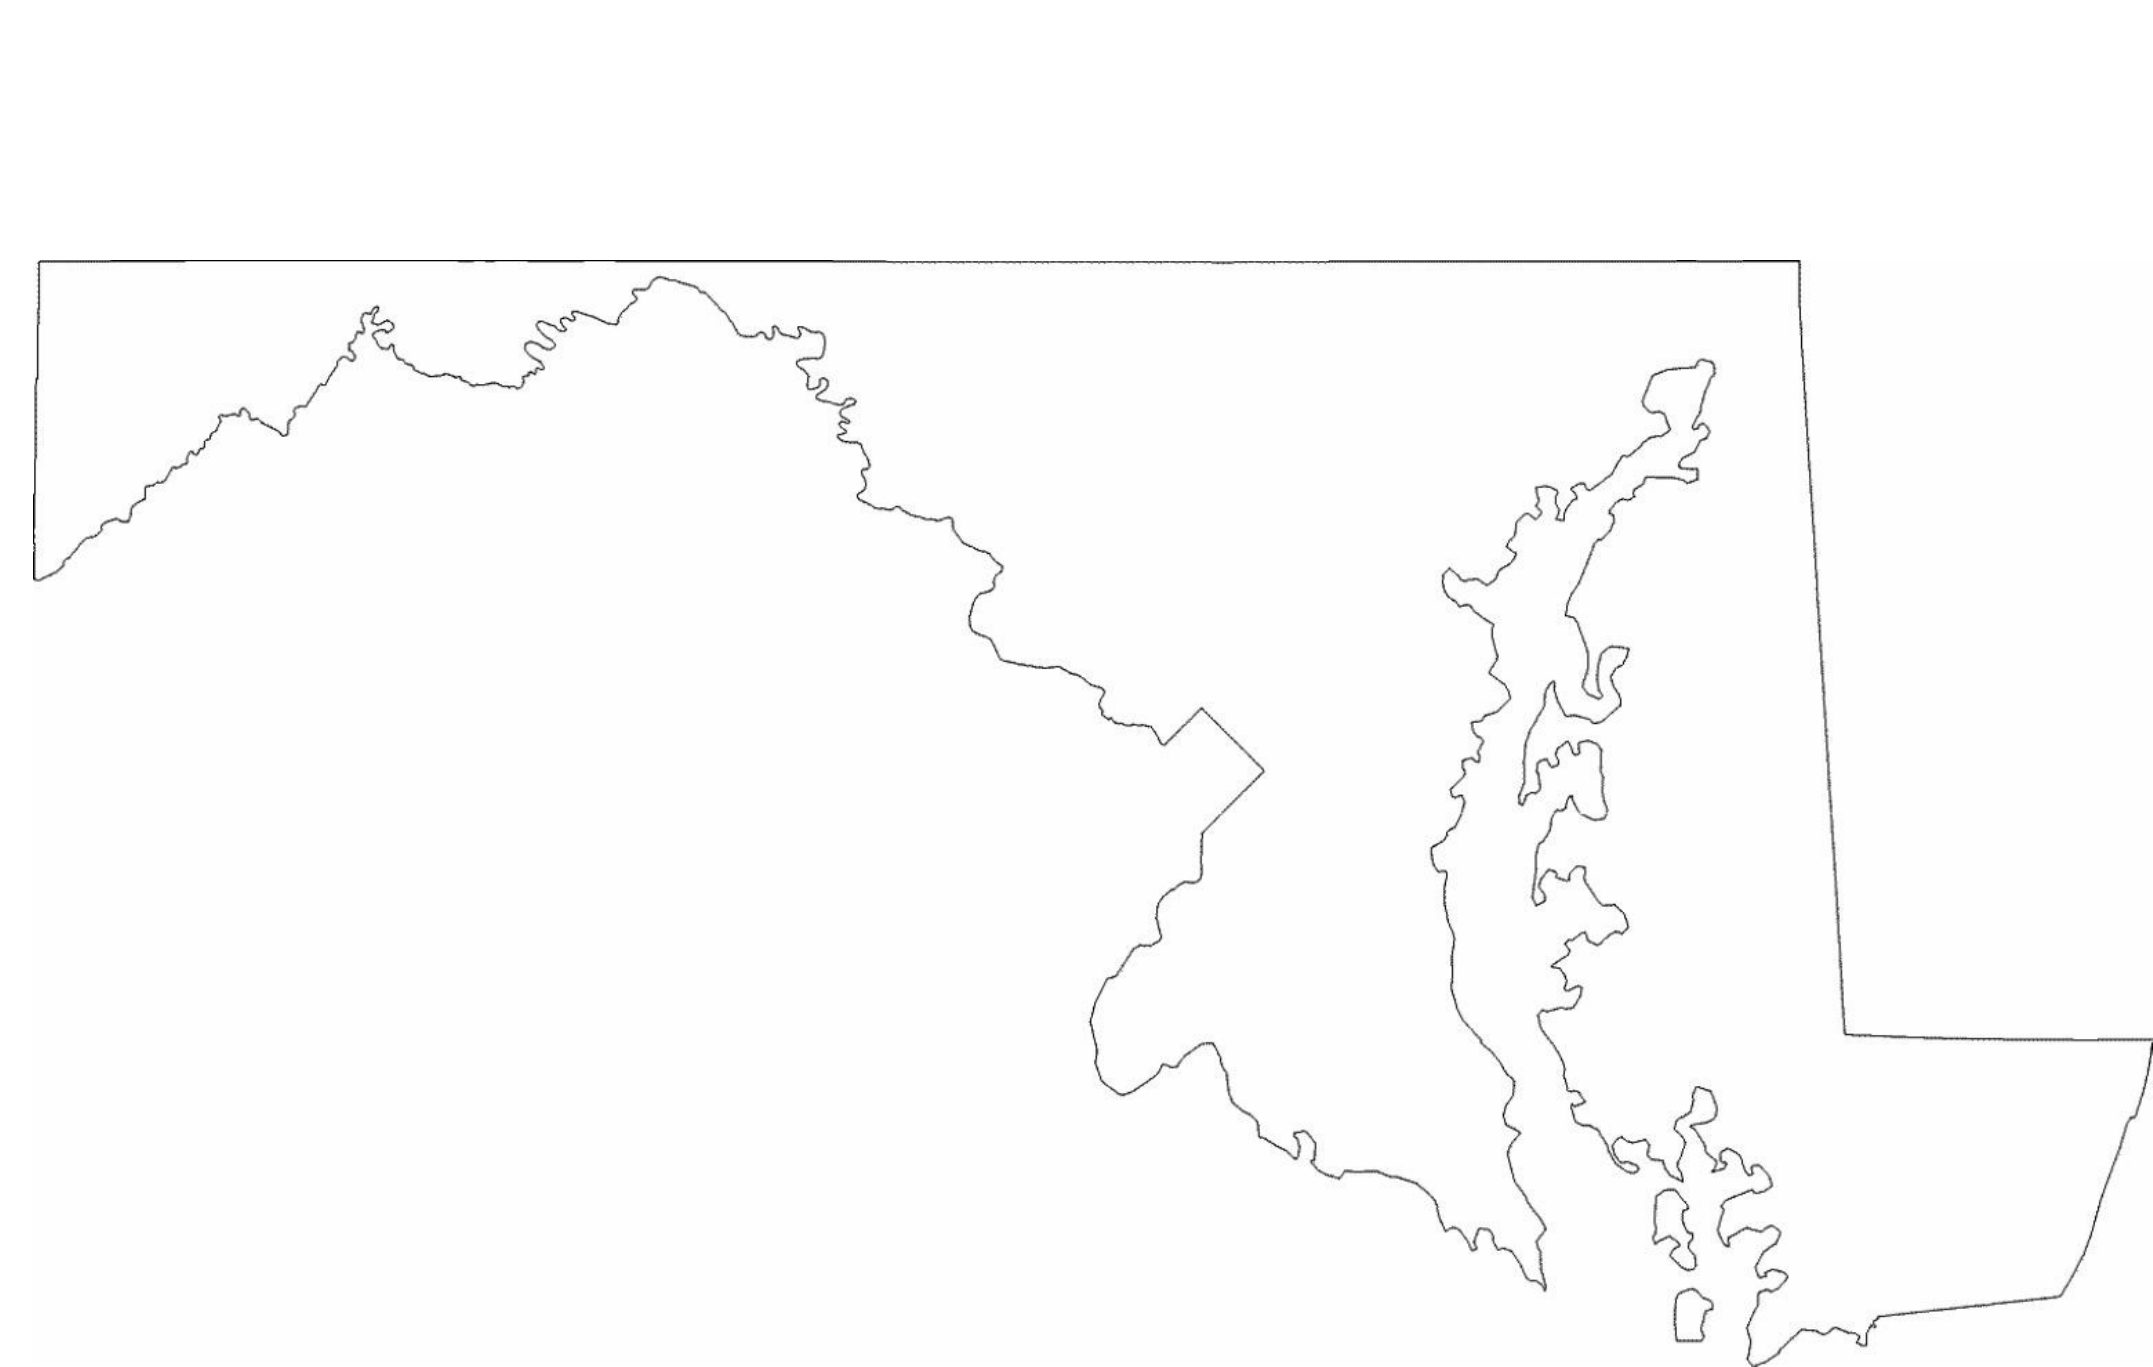 Maryland State Outline Map Free Download